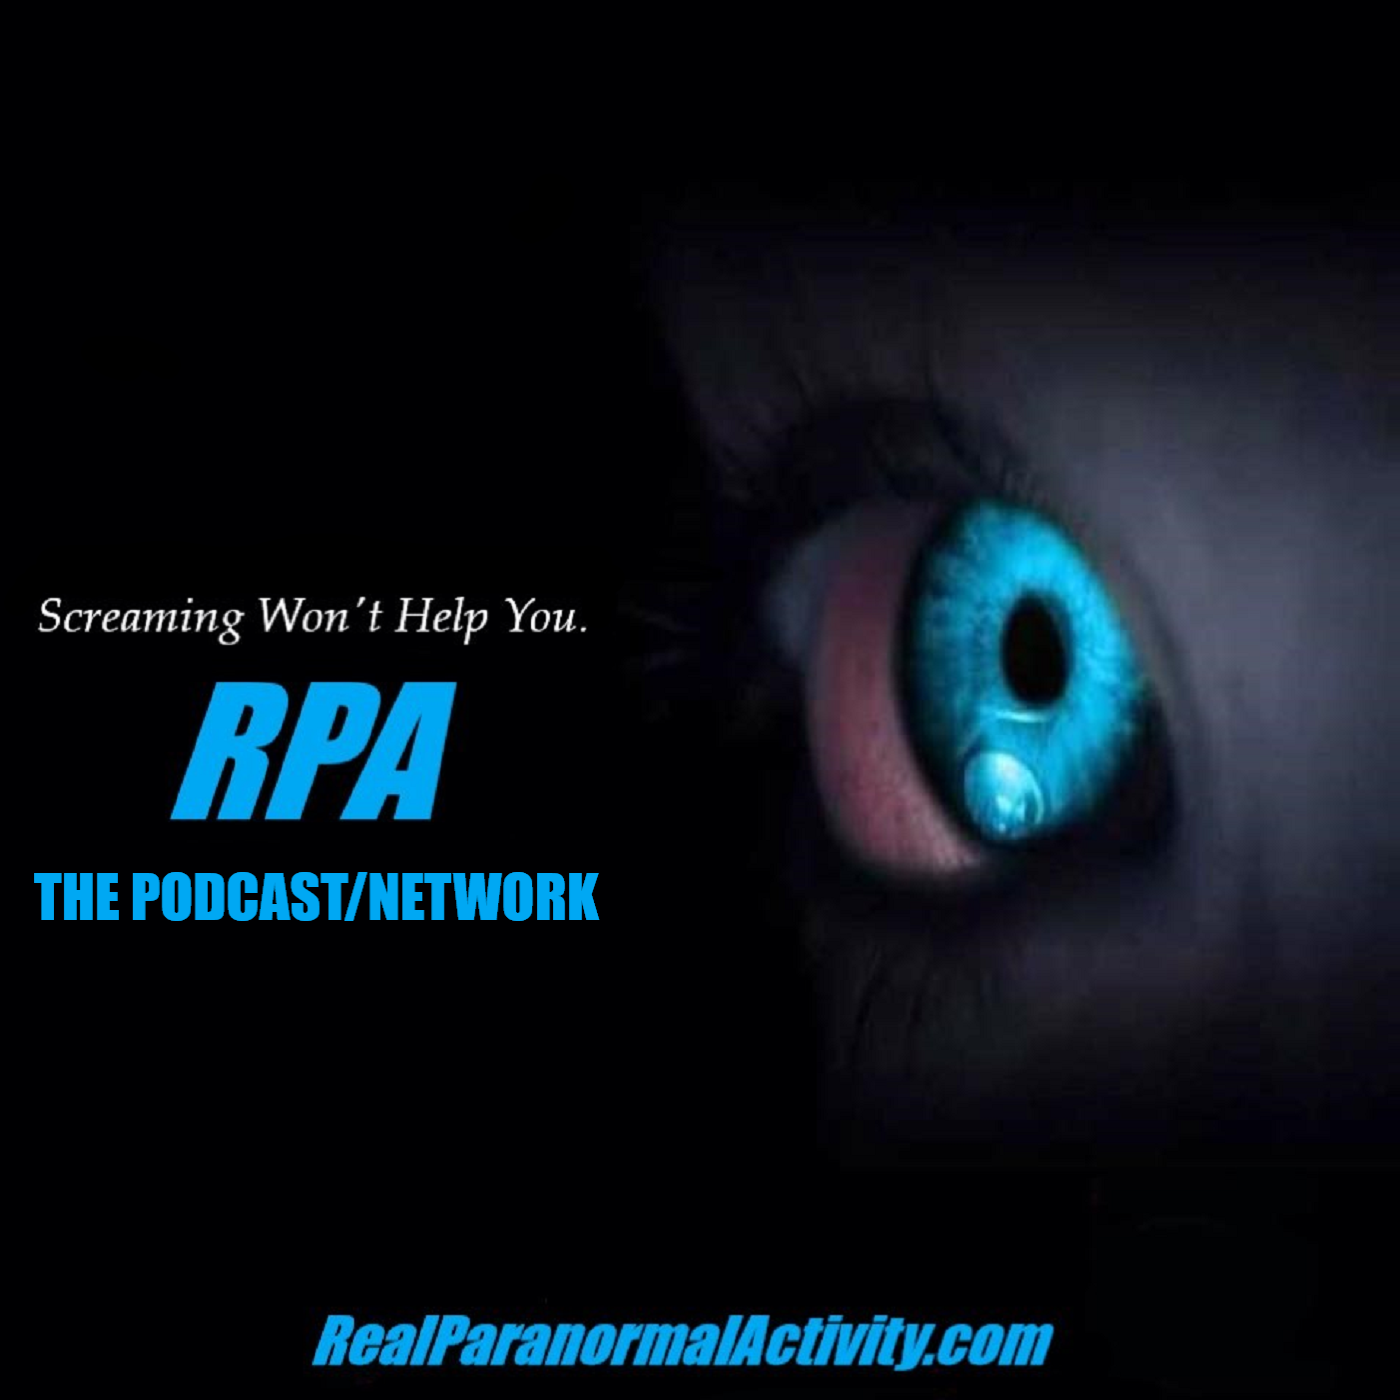 Artwork for RPA PROMOTIONAL VIDEO 2